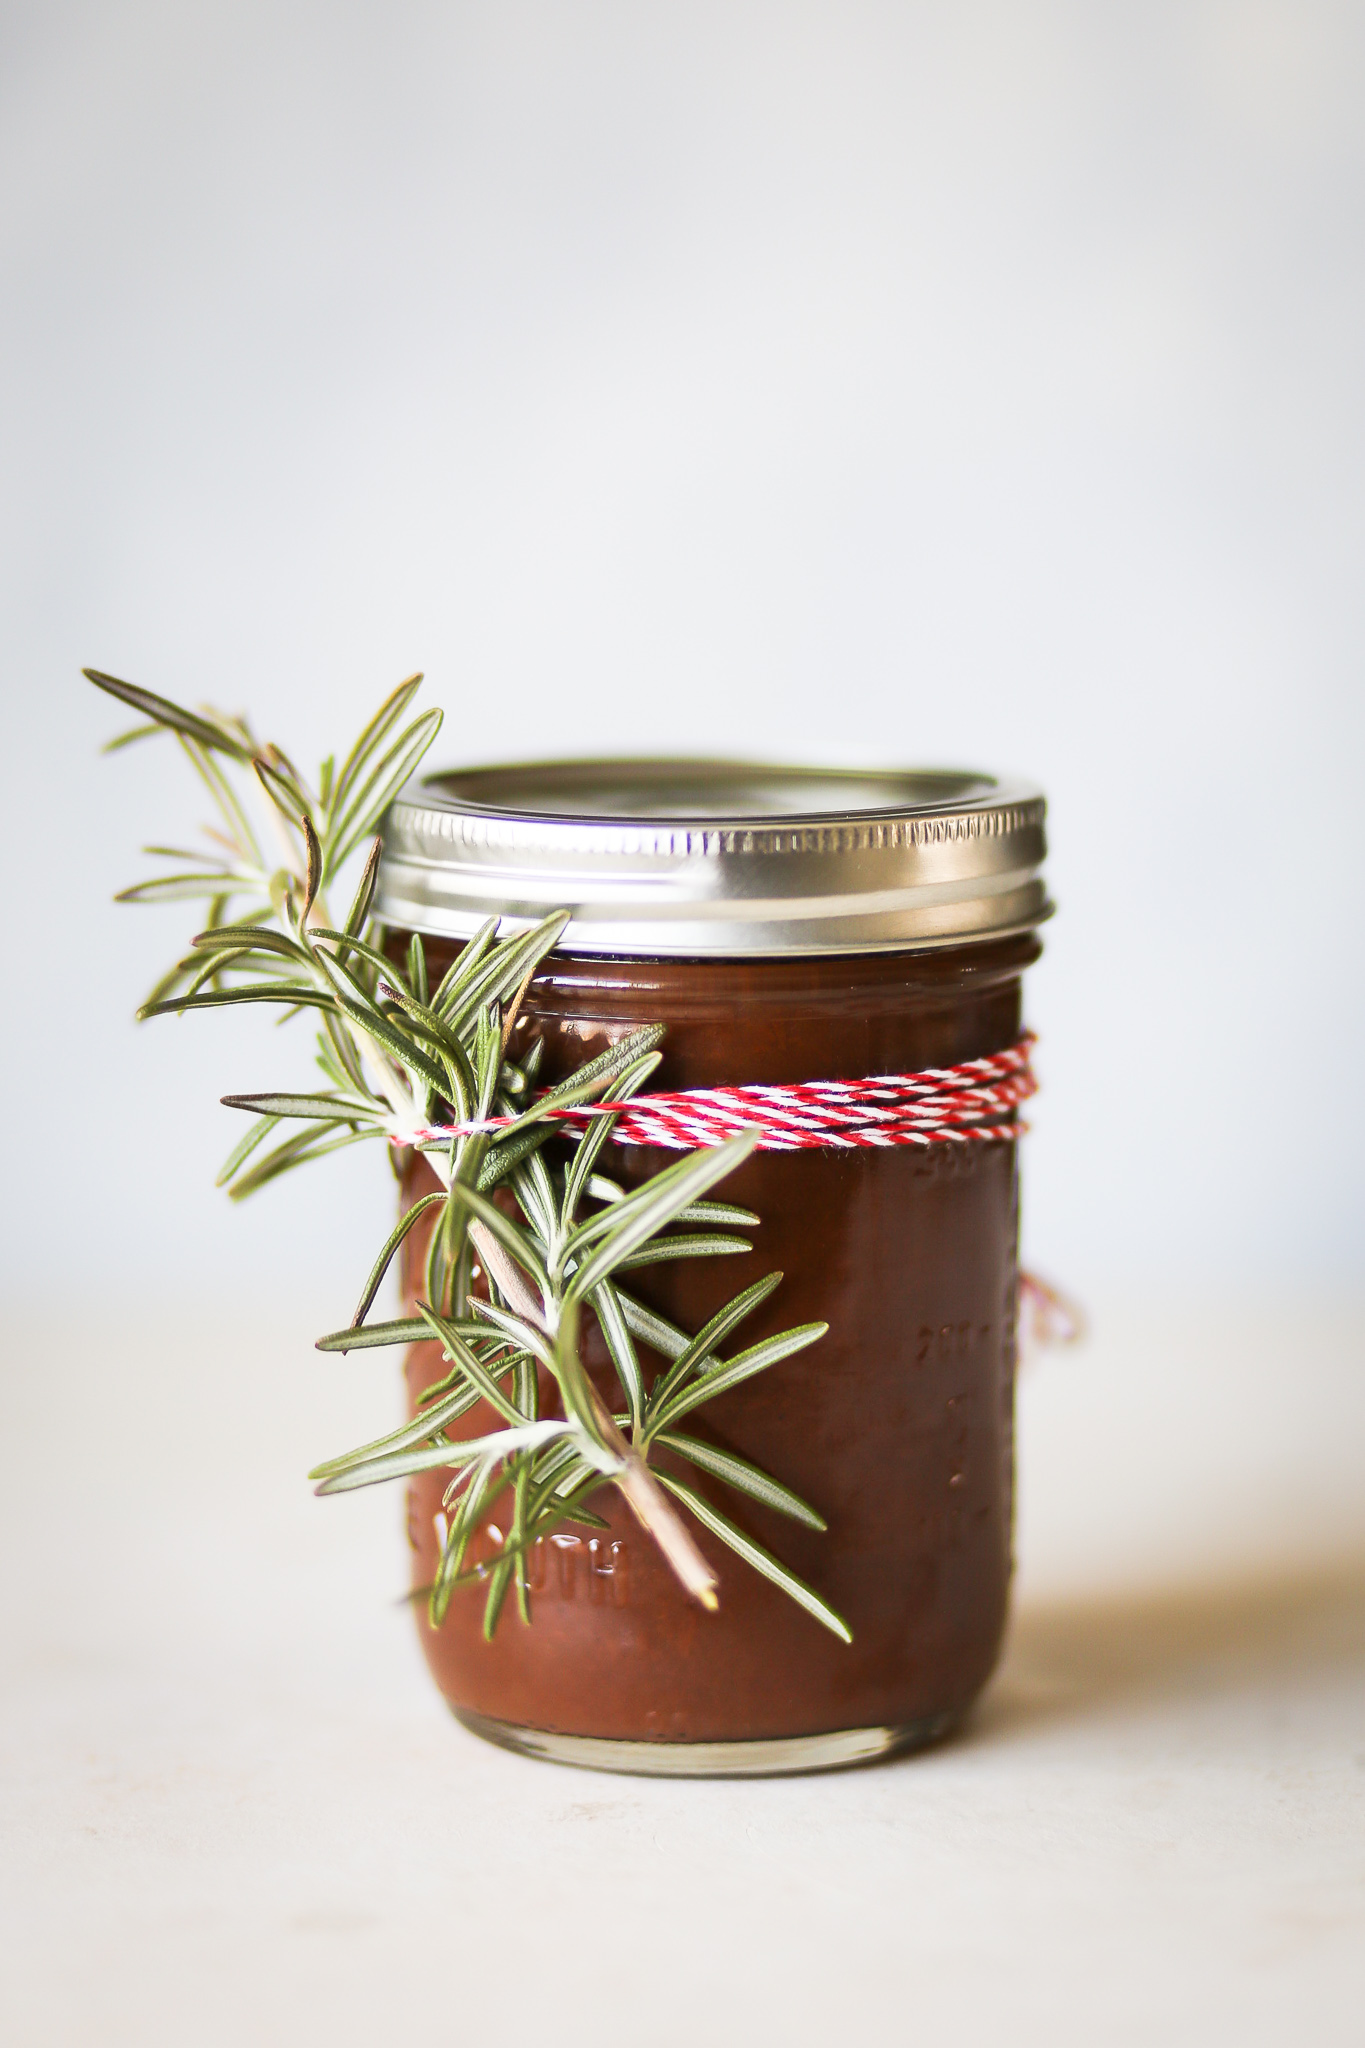 Rosemary Apple Butter | Set the Table #applebutter #applerecipe #nosugaradded #rosemary